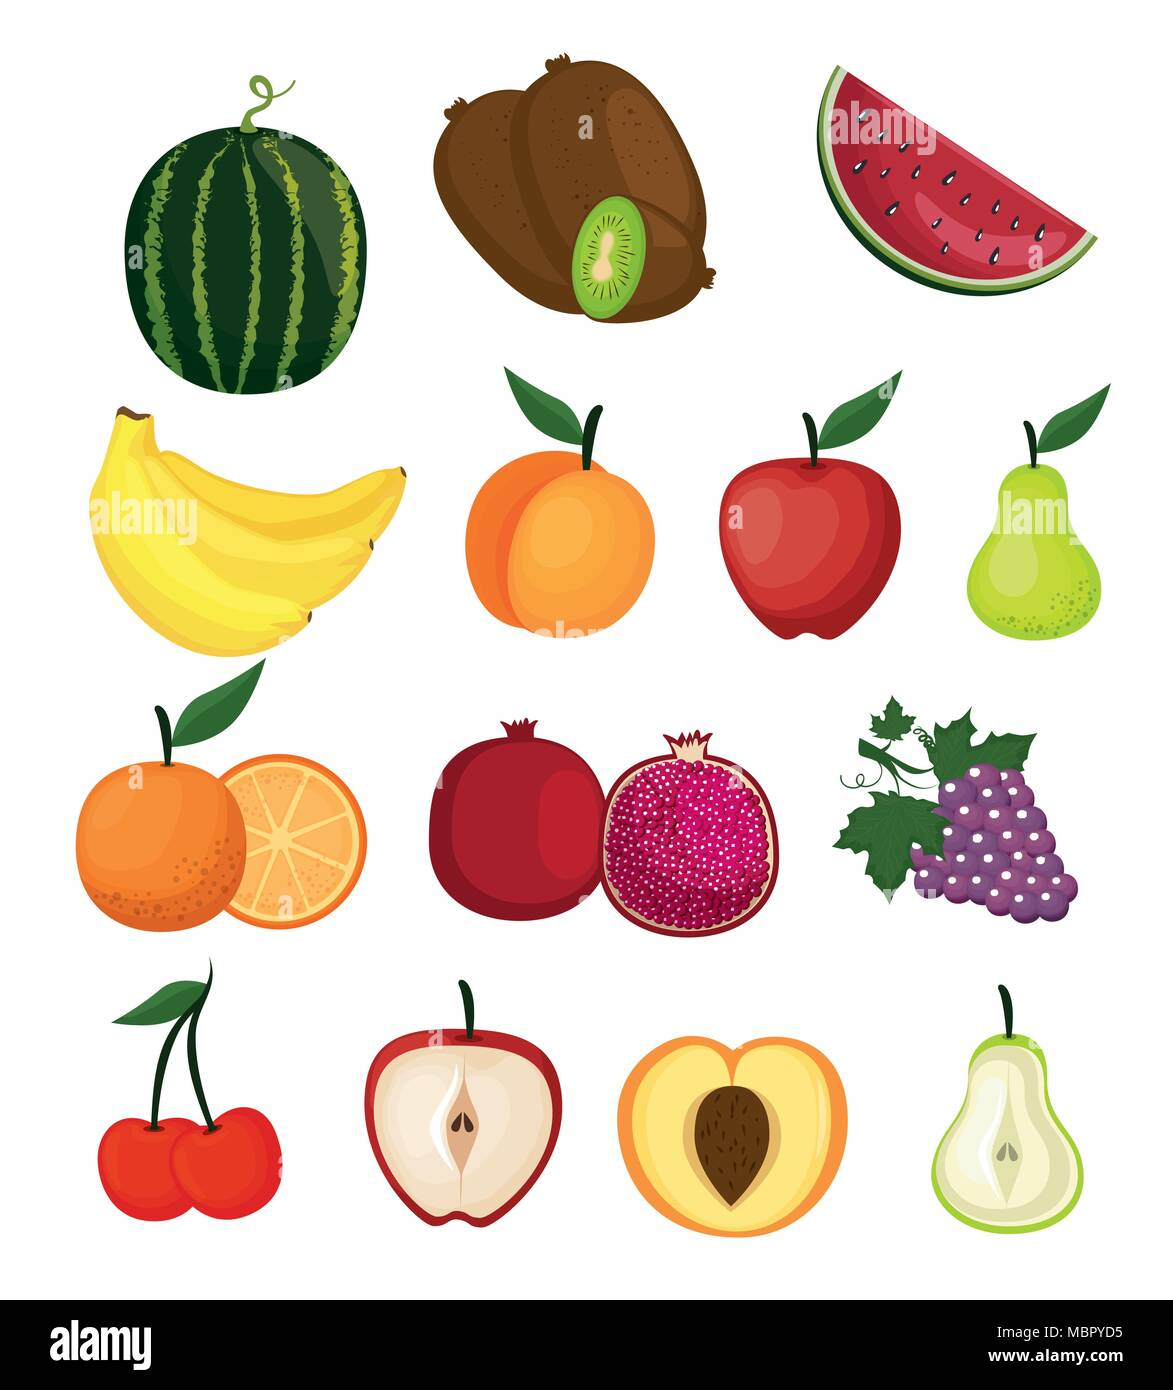 Healthy Food Cut Out Worksheet